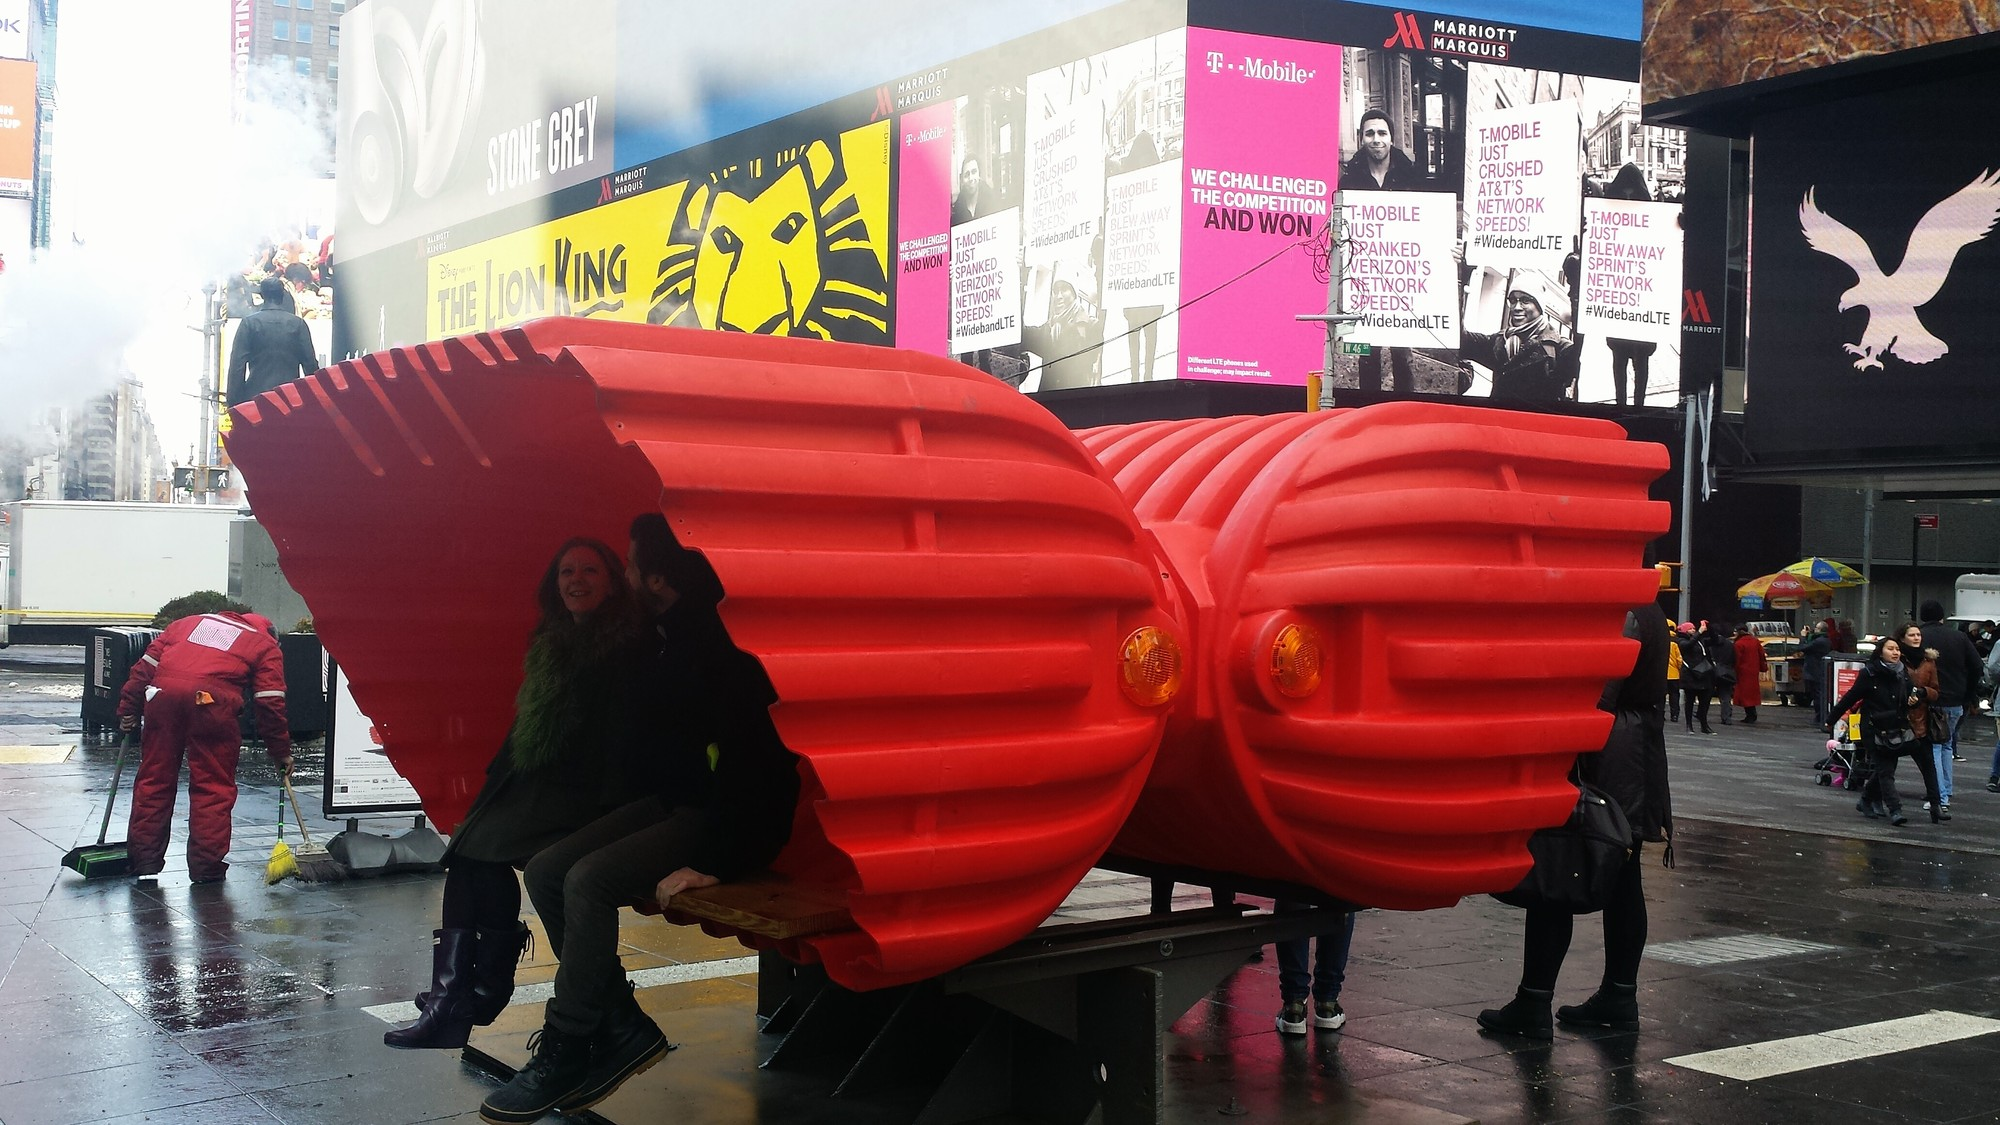 Stereotank's HeartBeat Transformed into Times Square HeartSeat, © Stereotank